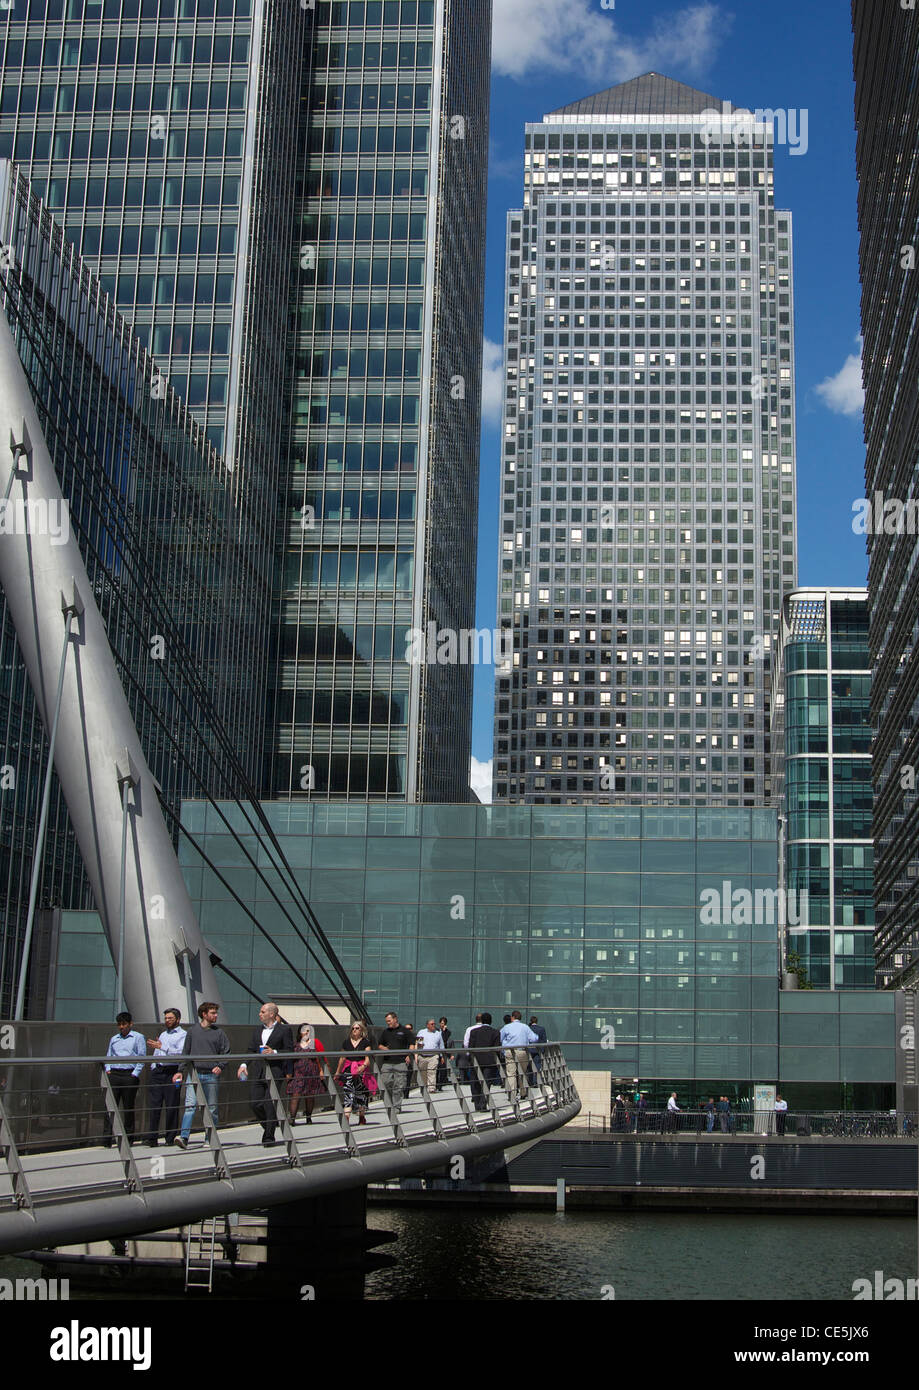 People on foot bridge in front of One Canada Square, Canary Wharf, London Docklands, England. - Stock Image